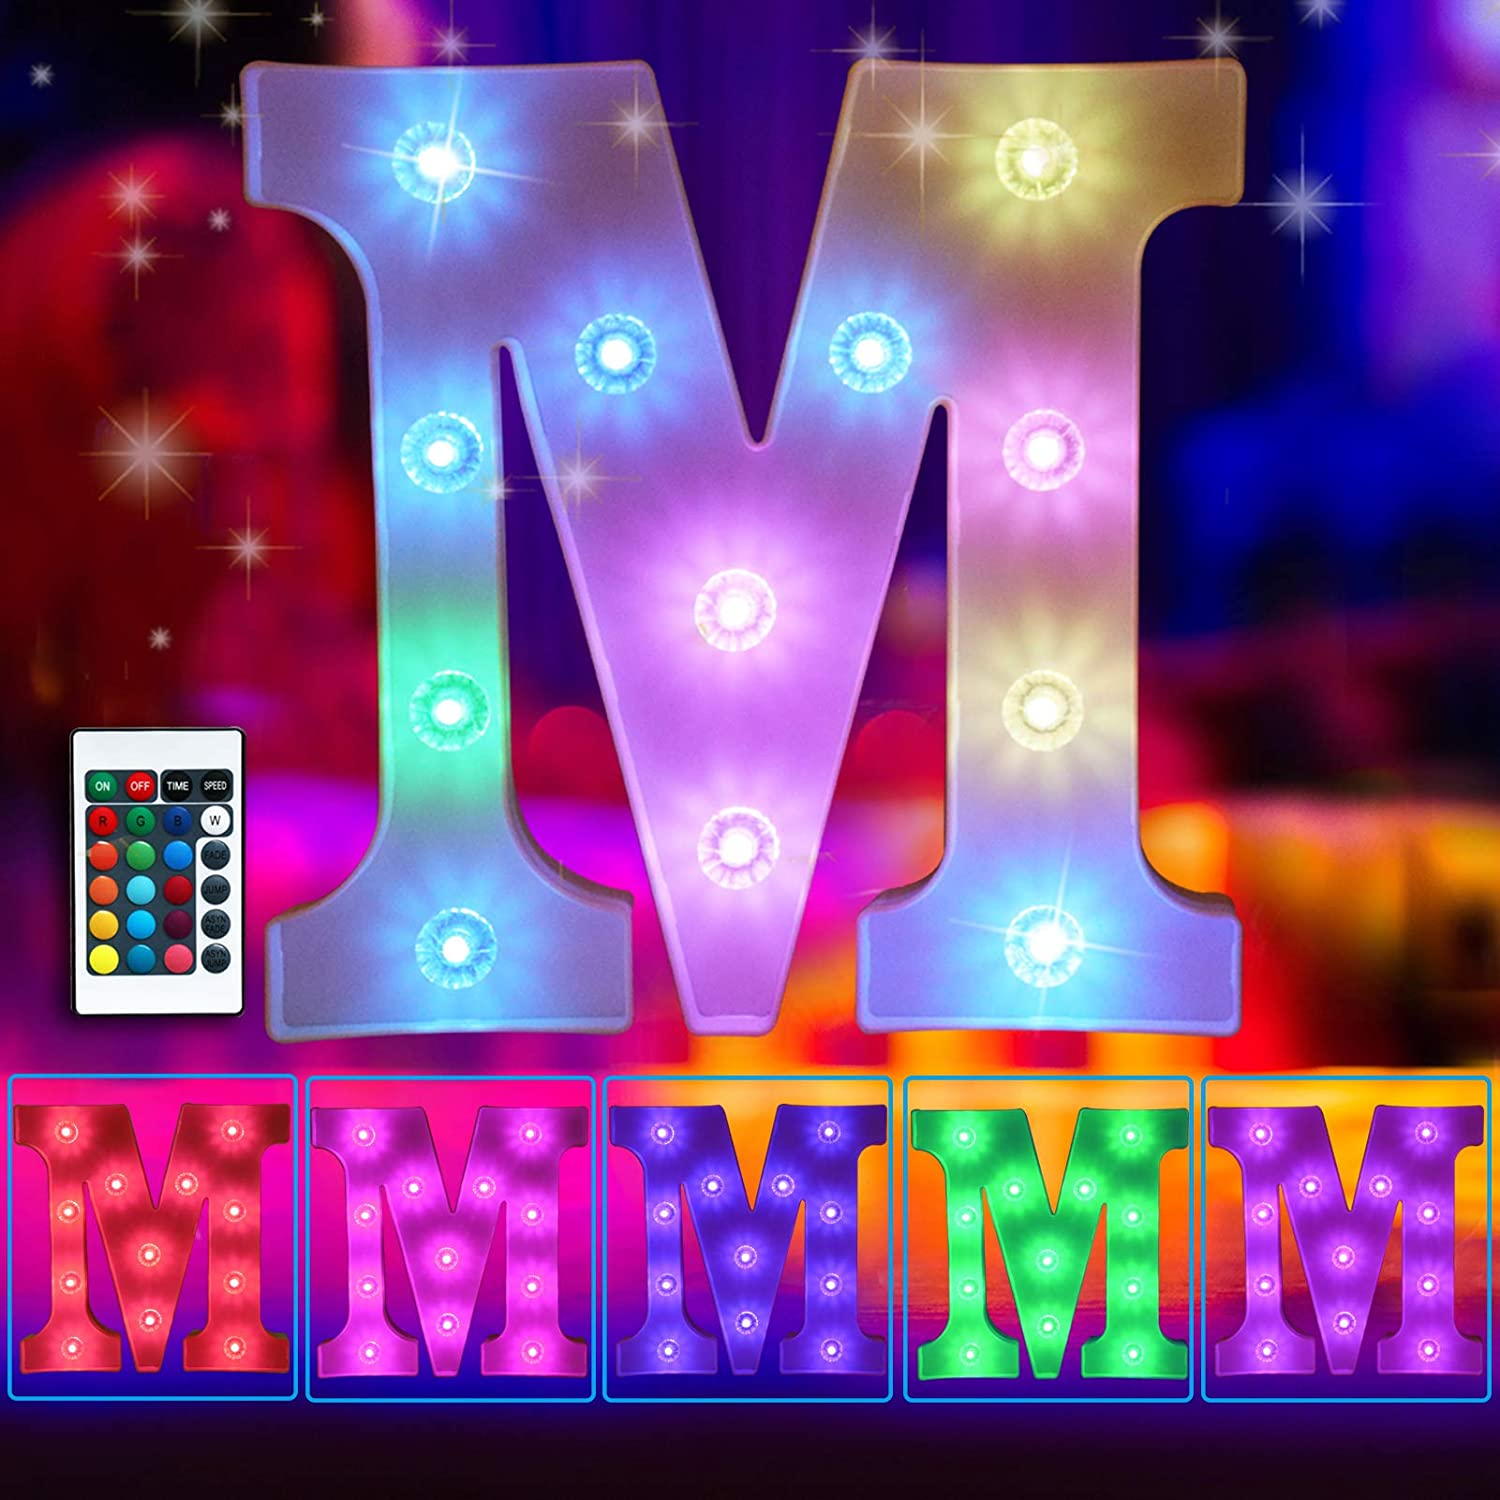 Elnsivo Colorful LED Marquee Letter Lights Light Up 16 Colors Changing Letter Sign Remote Control Multicolor 26 Alphabet Letter Lamp for Wall Wedding Birthday Party Christmas Decoration(RGB Letter M)